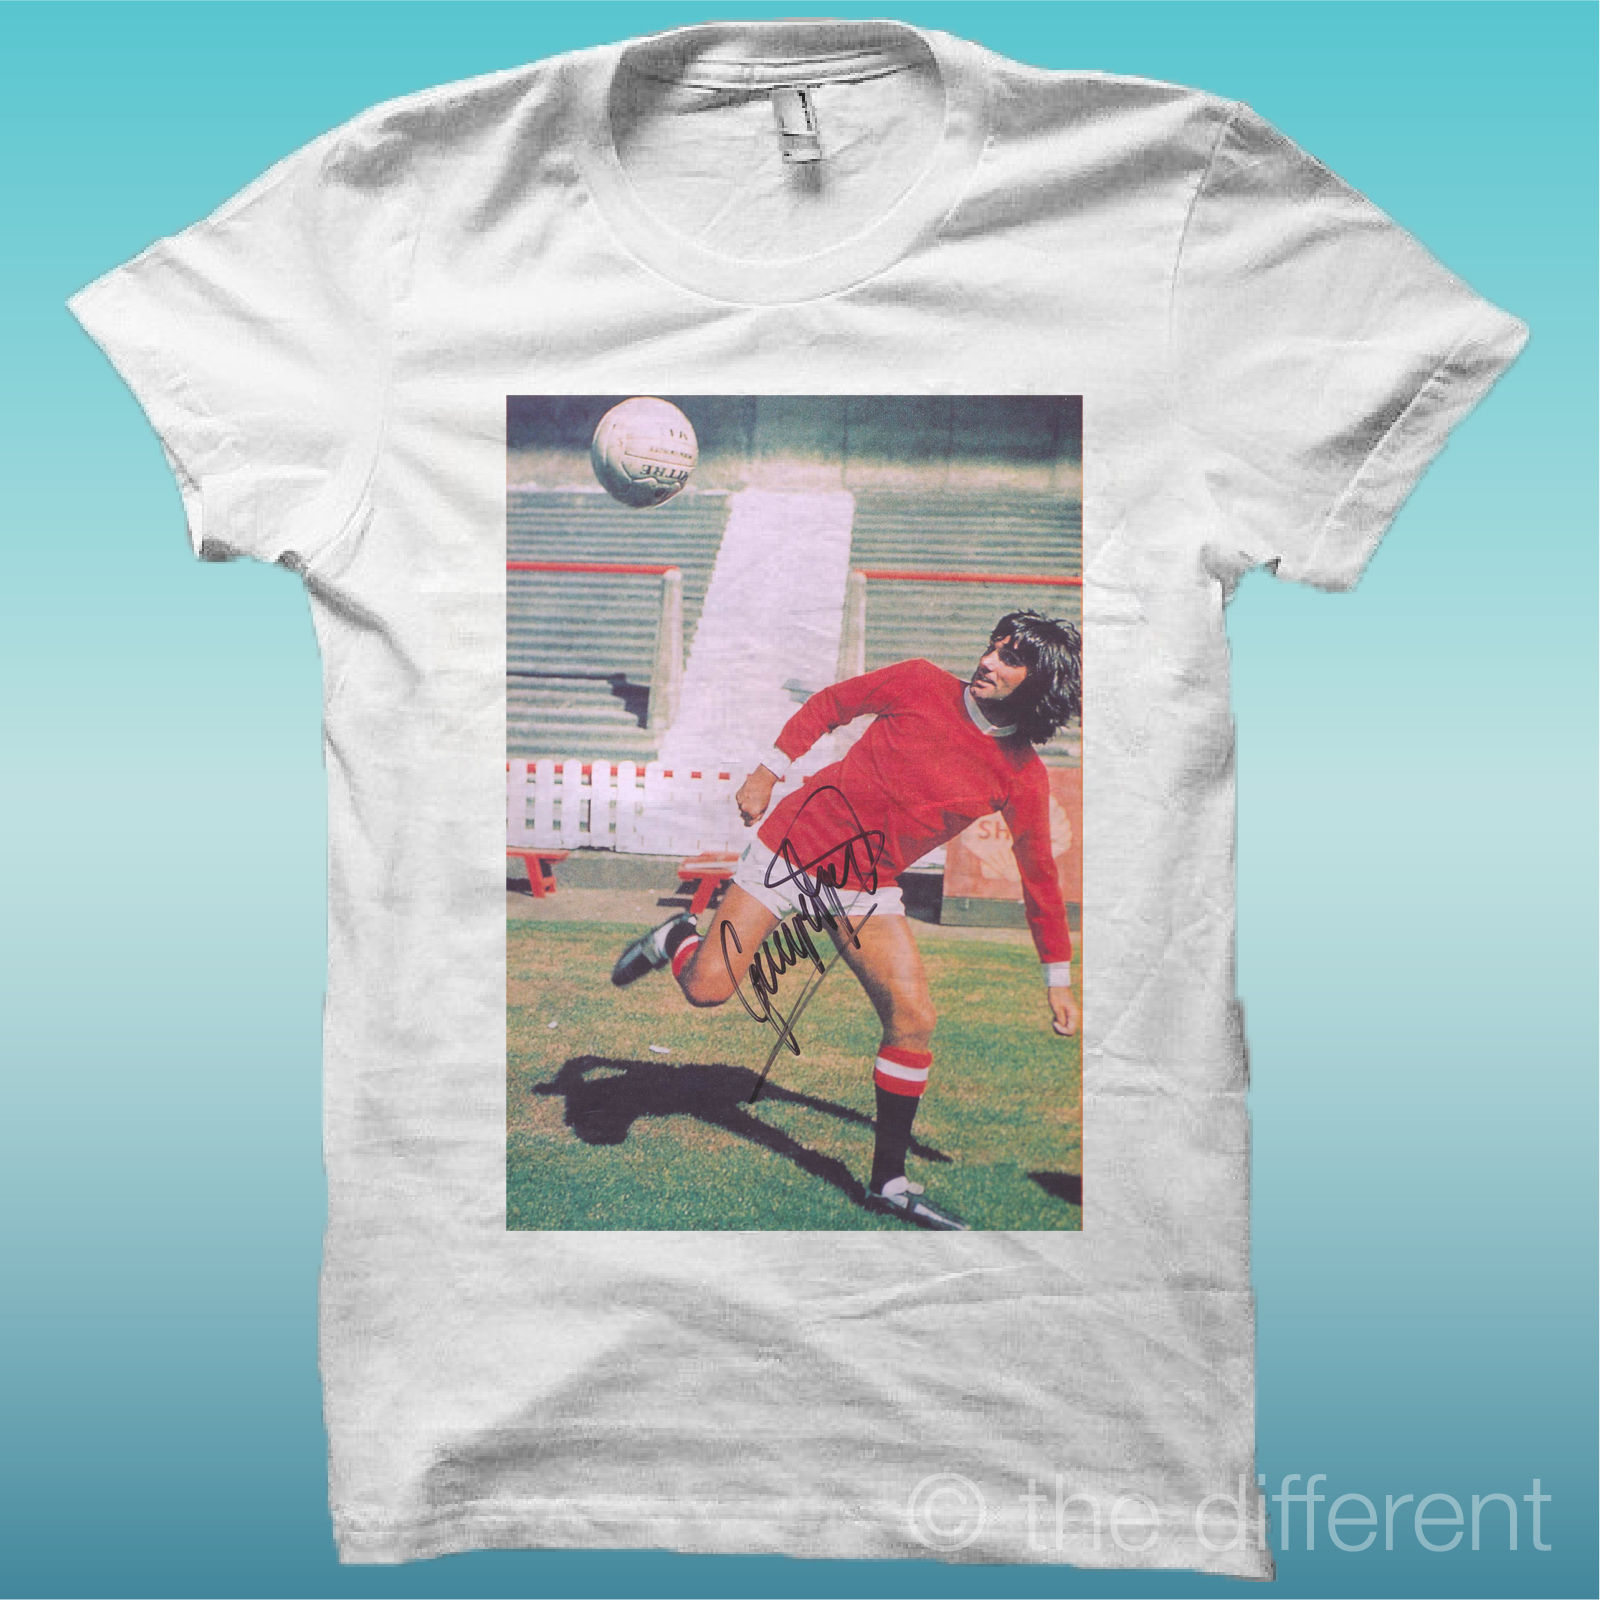 T-SHIRT MEN'S PICTURE GEORGE BEST WITH SIGNATURE GIFT IDEA ROAD TO LUCK image